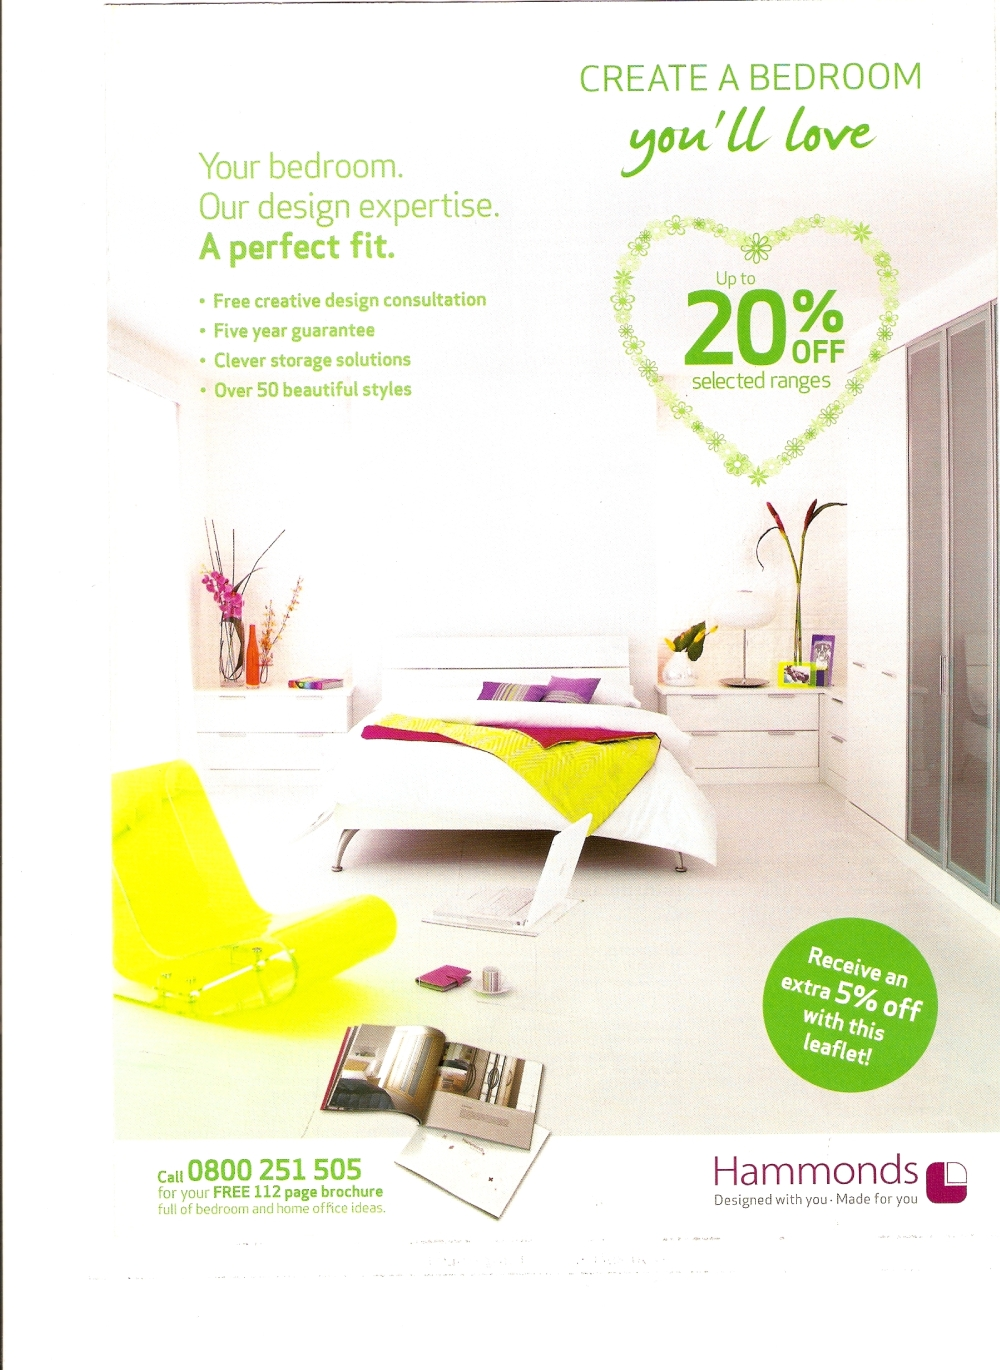 The original Hammonds advert using Rustic Brick as the backdrop for Hammonds contemporary range Horizon white